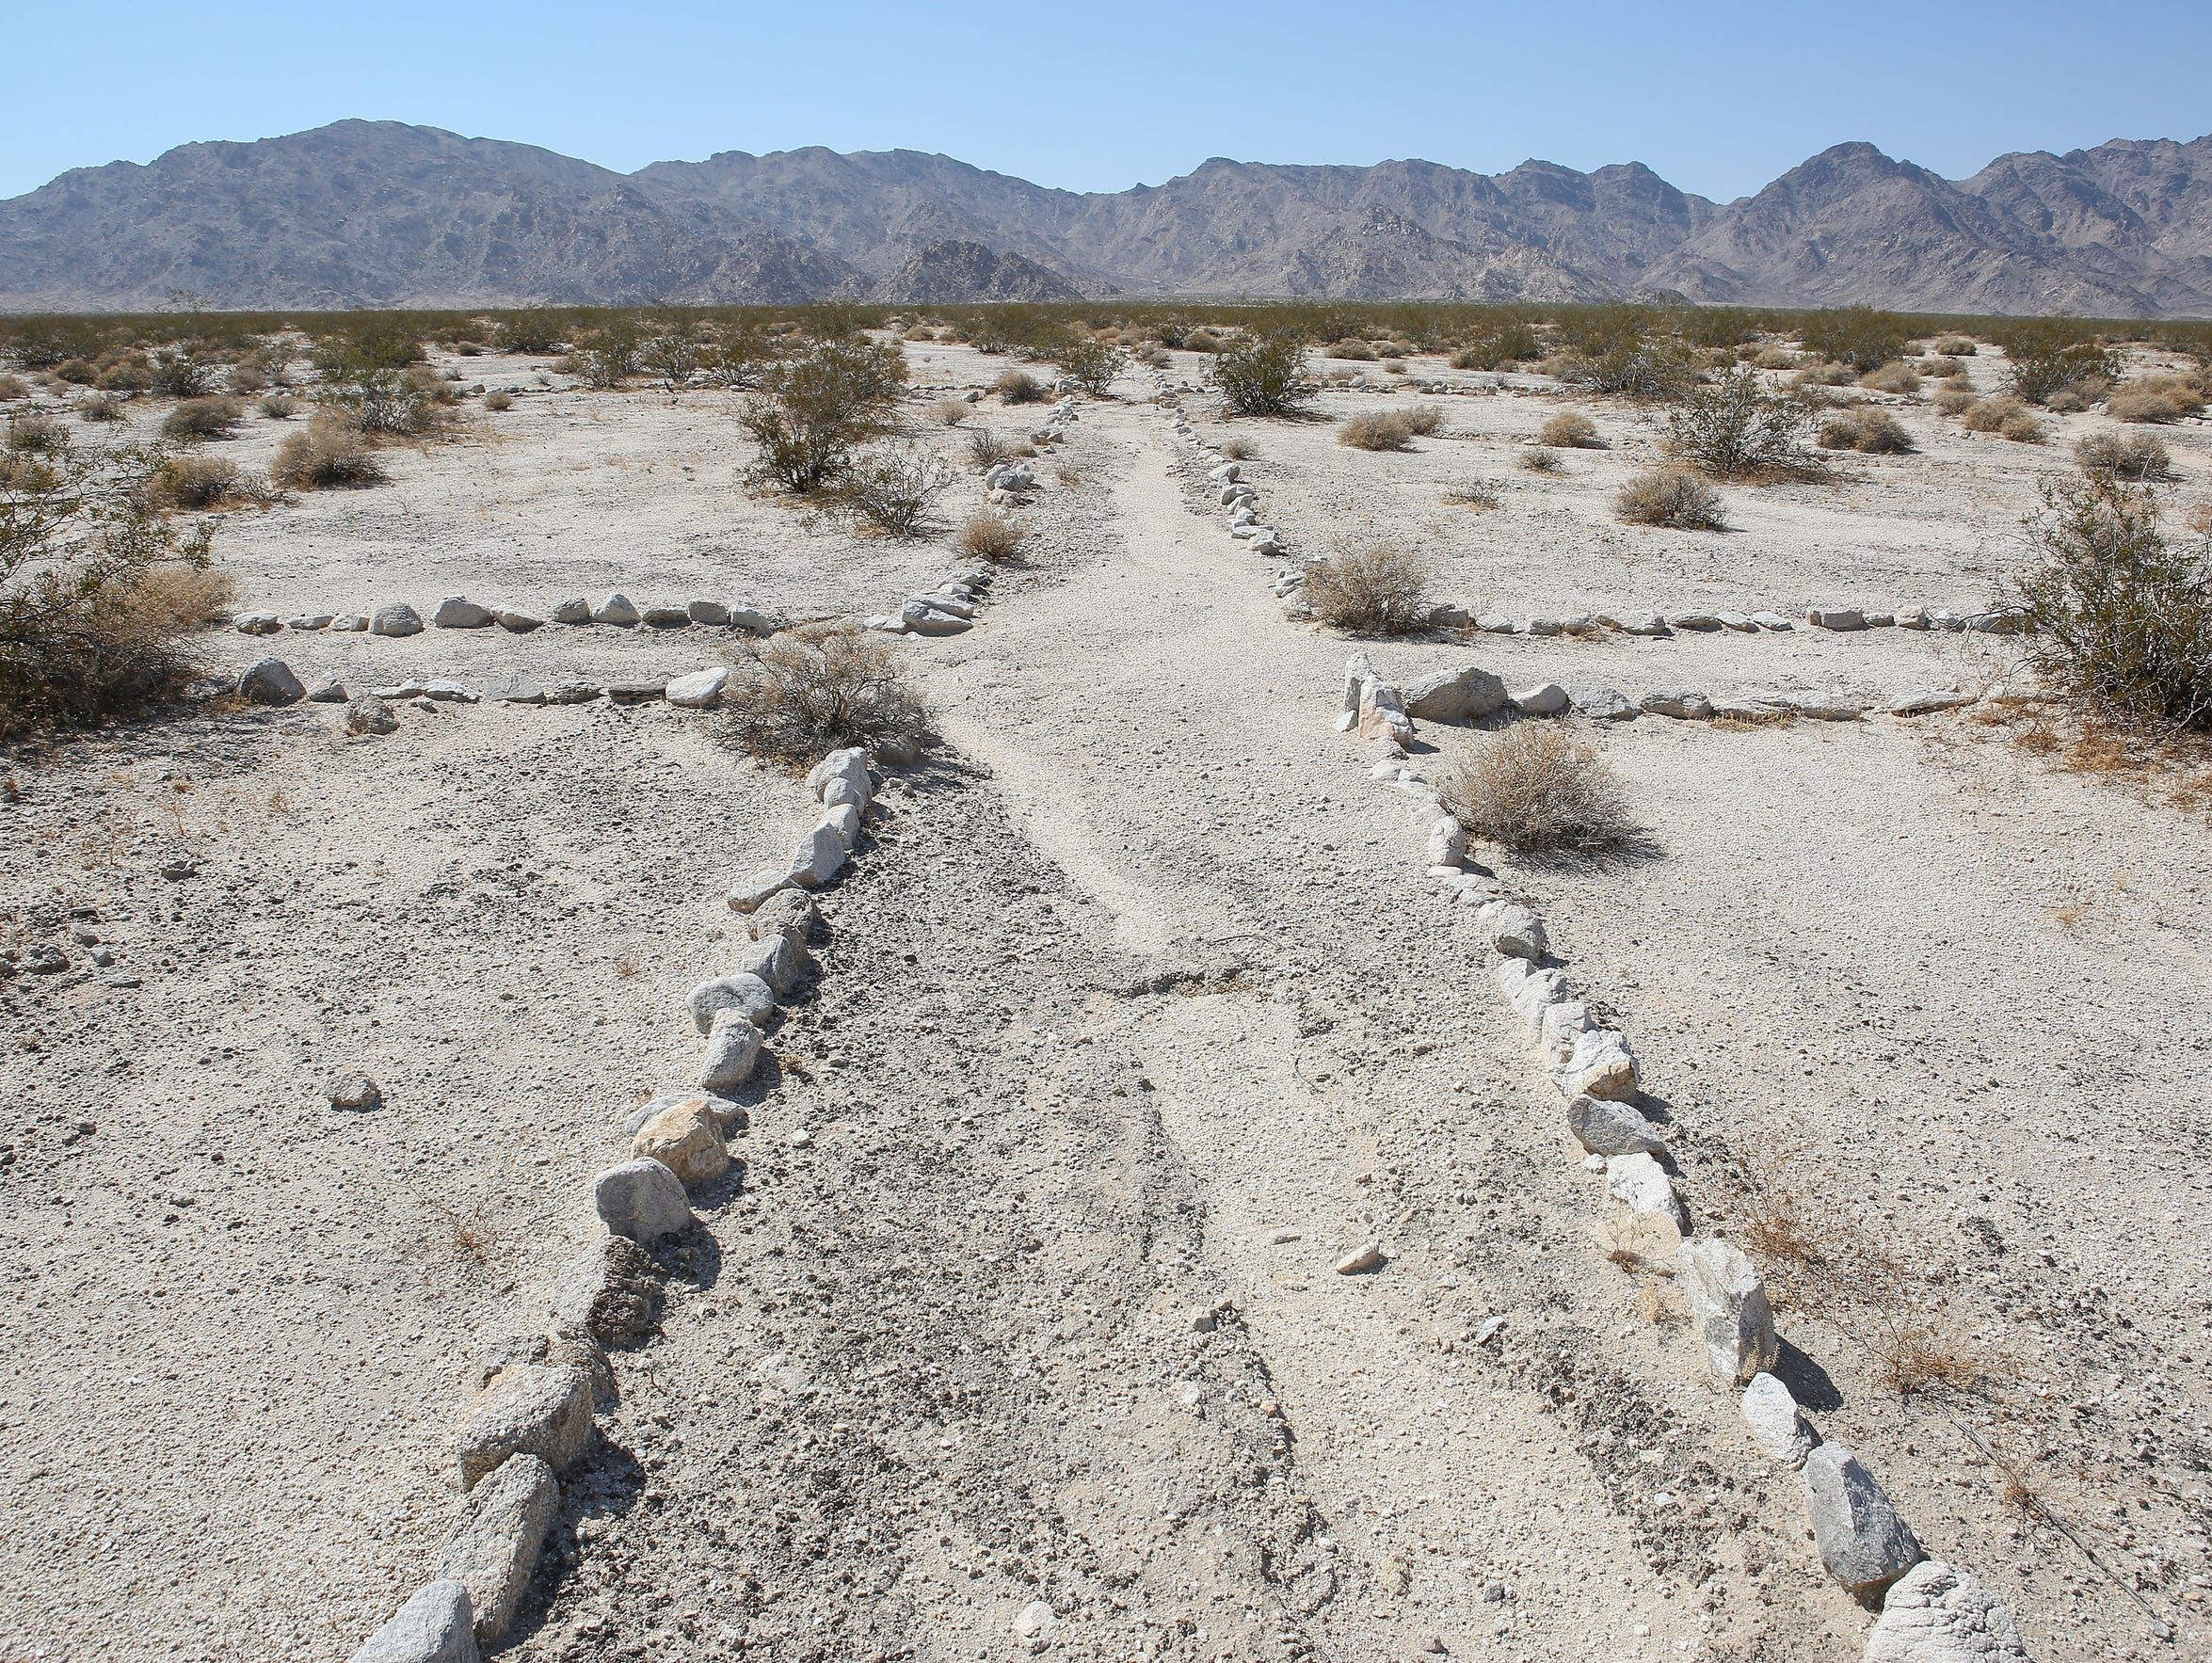 Paths between tents were marked with stones at Camp